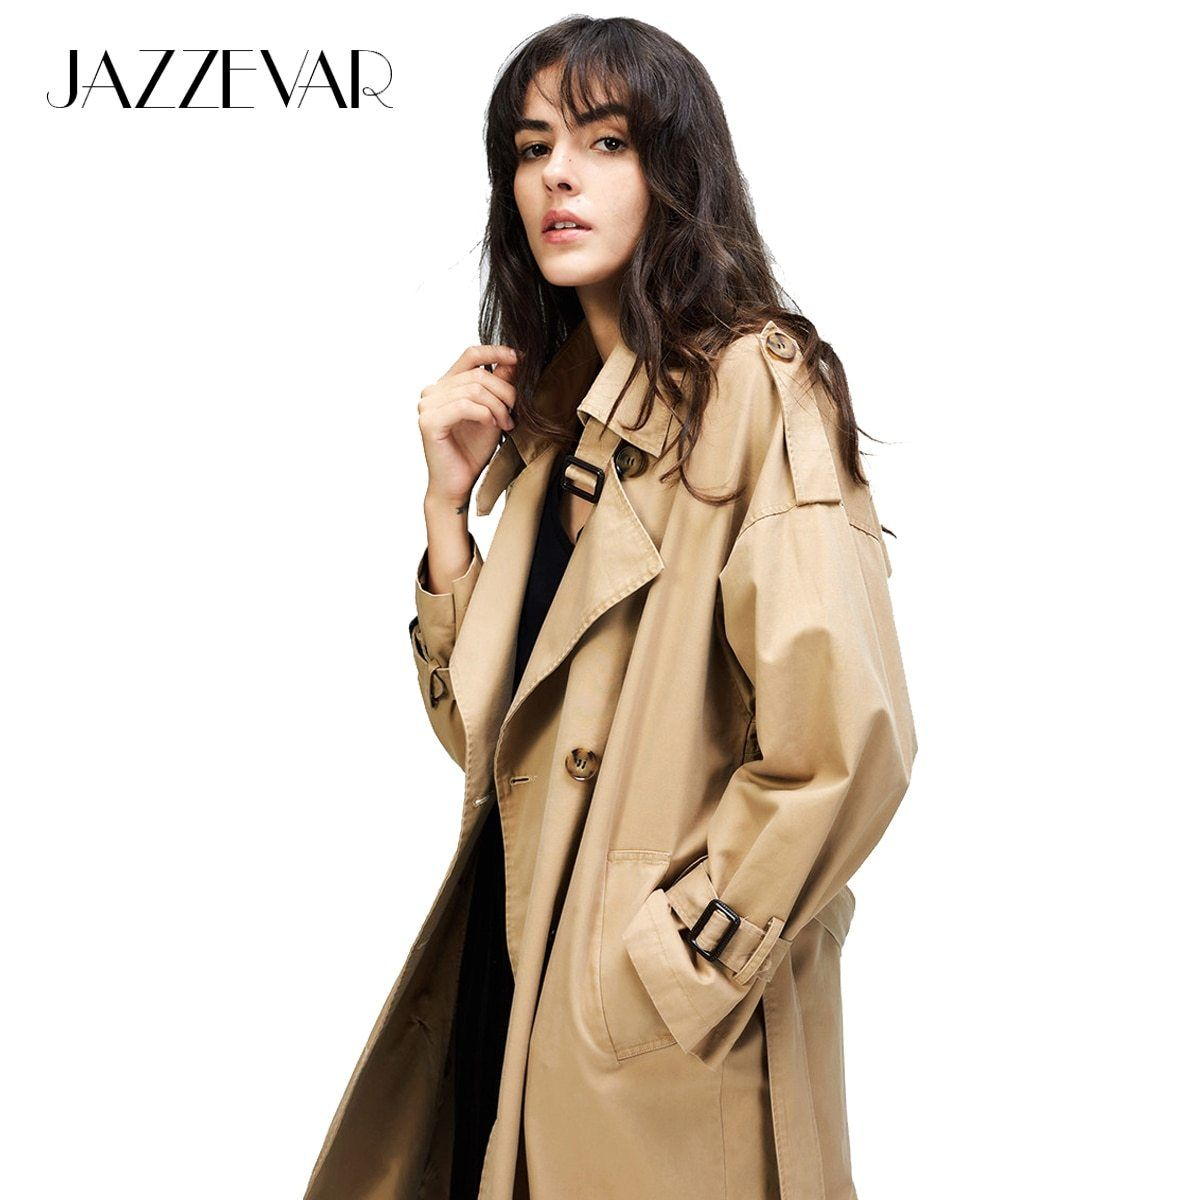 d20fa1343e95a JAZZEVAR 2018 Autumn New Women s Casual trench coat oversize Double  Breasted Vintage Washed Outwear Loose Clothing